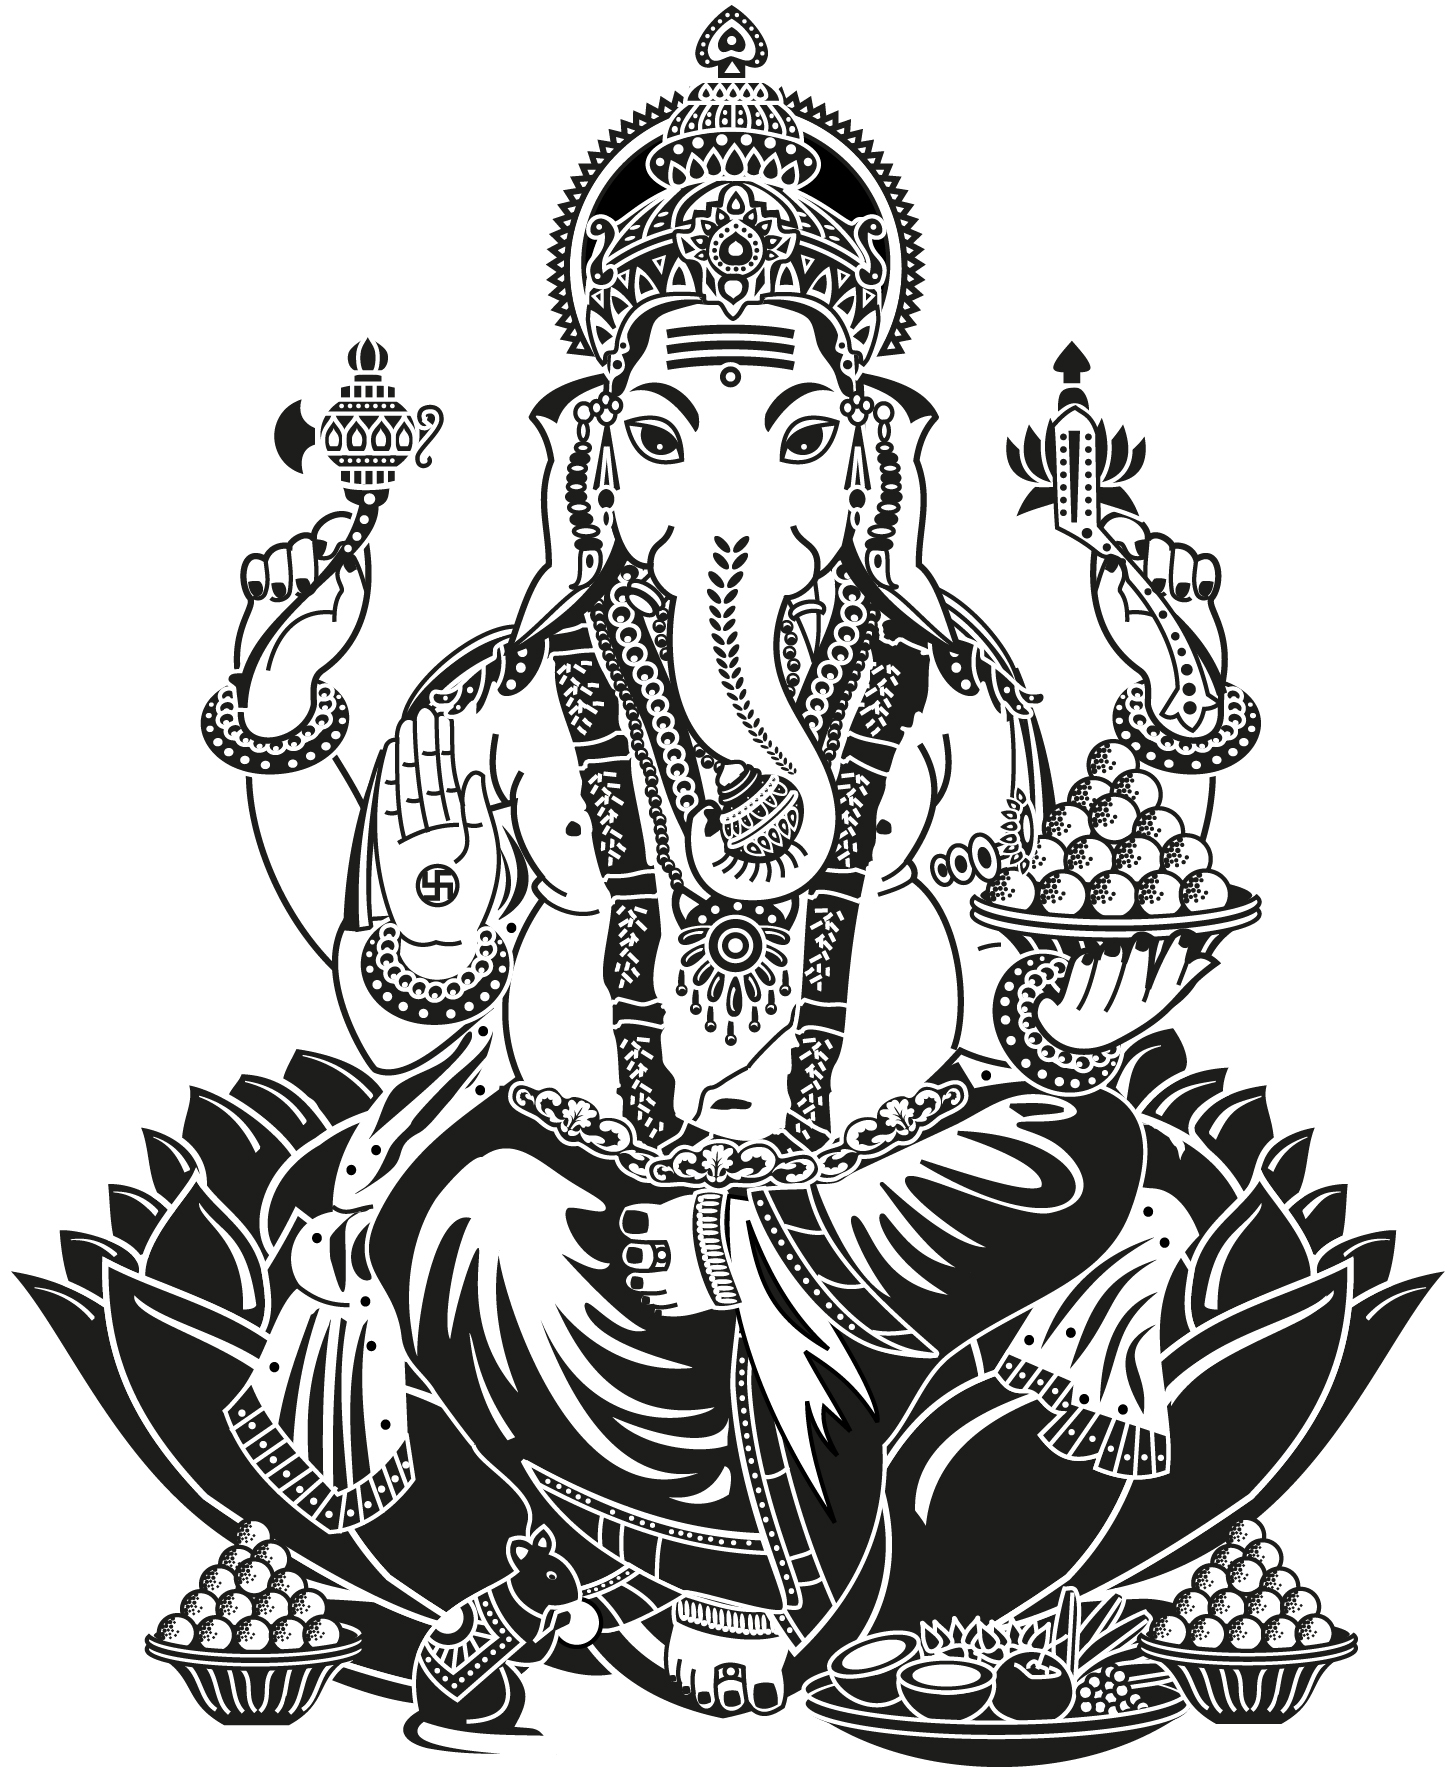 Ganesh Line Drawing : Ganesh line drawing at getdrawings free for personal